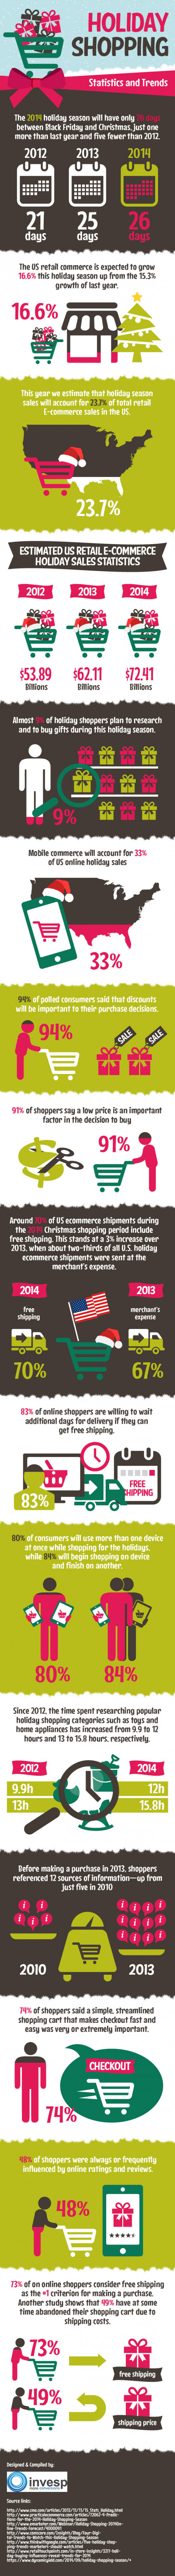 Holiday Shopping in Numbers